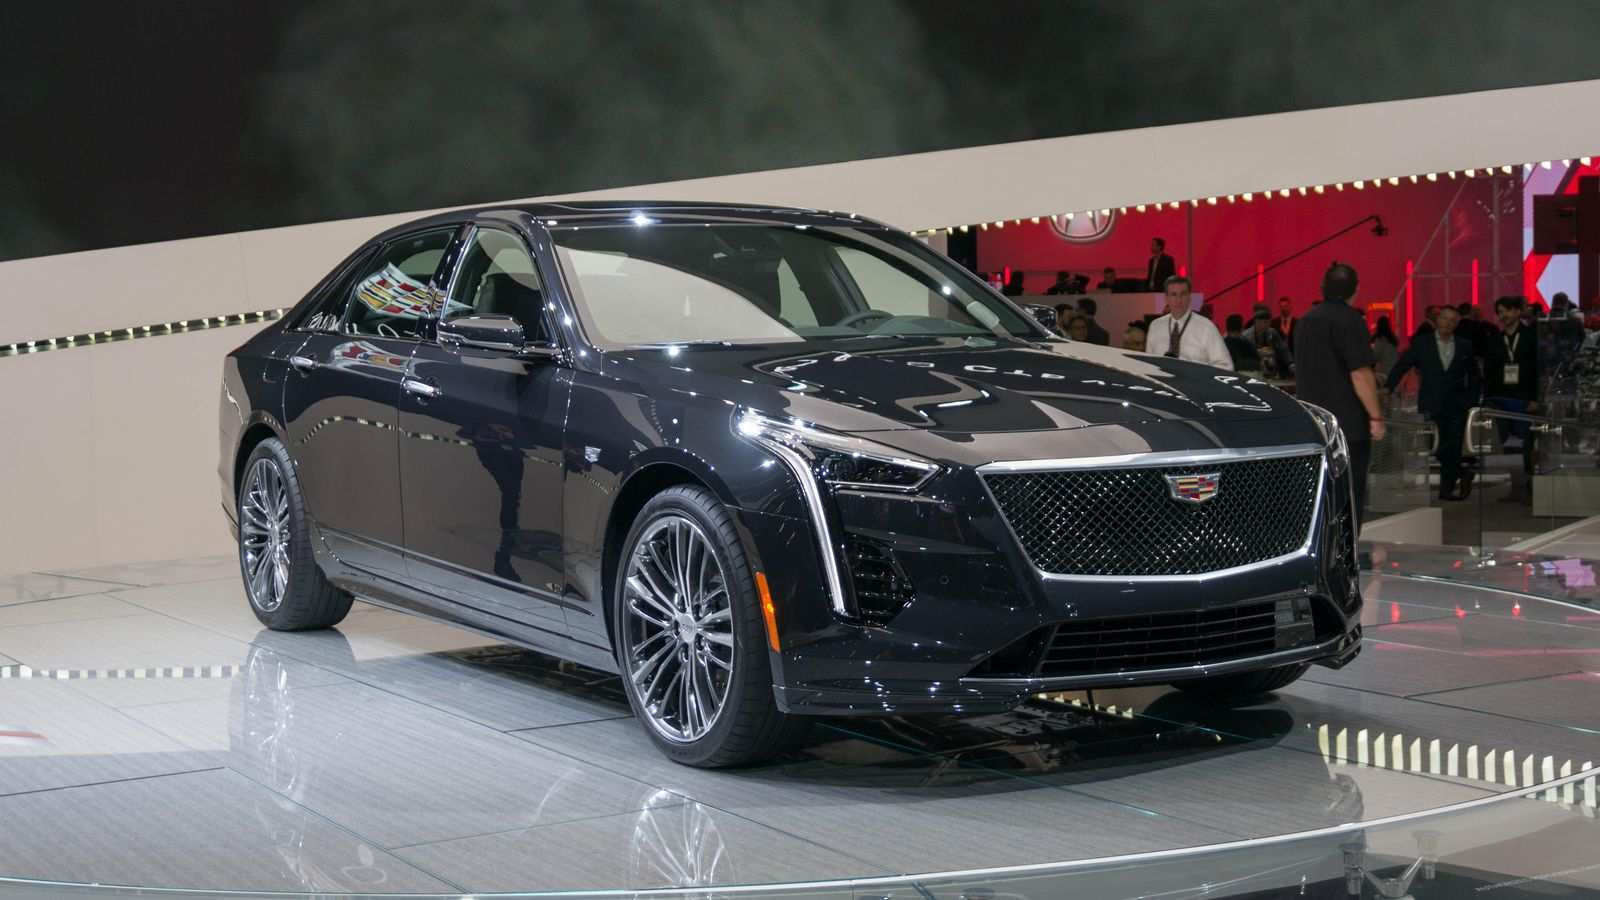 66 Great New Cadillac For 2019 New Concept Images with New Cadillac For 2019 New Concept